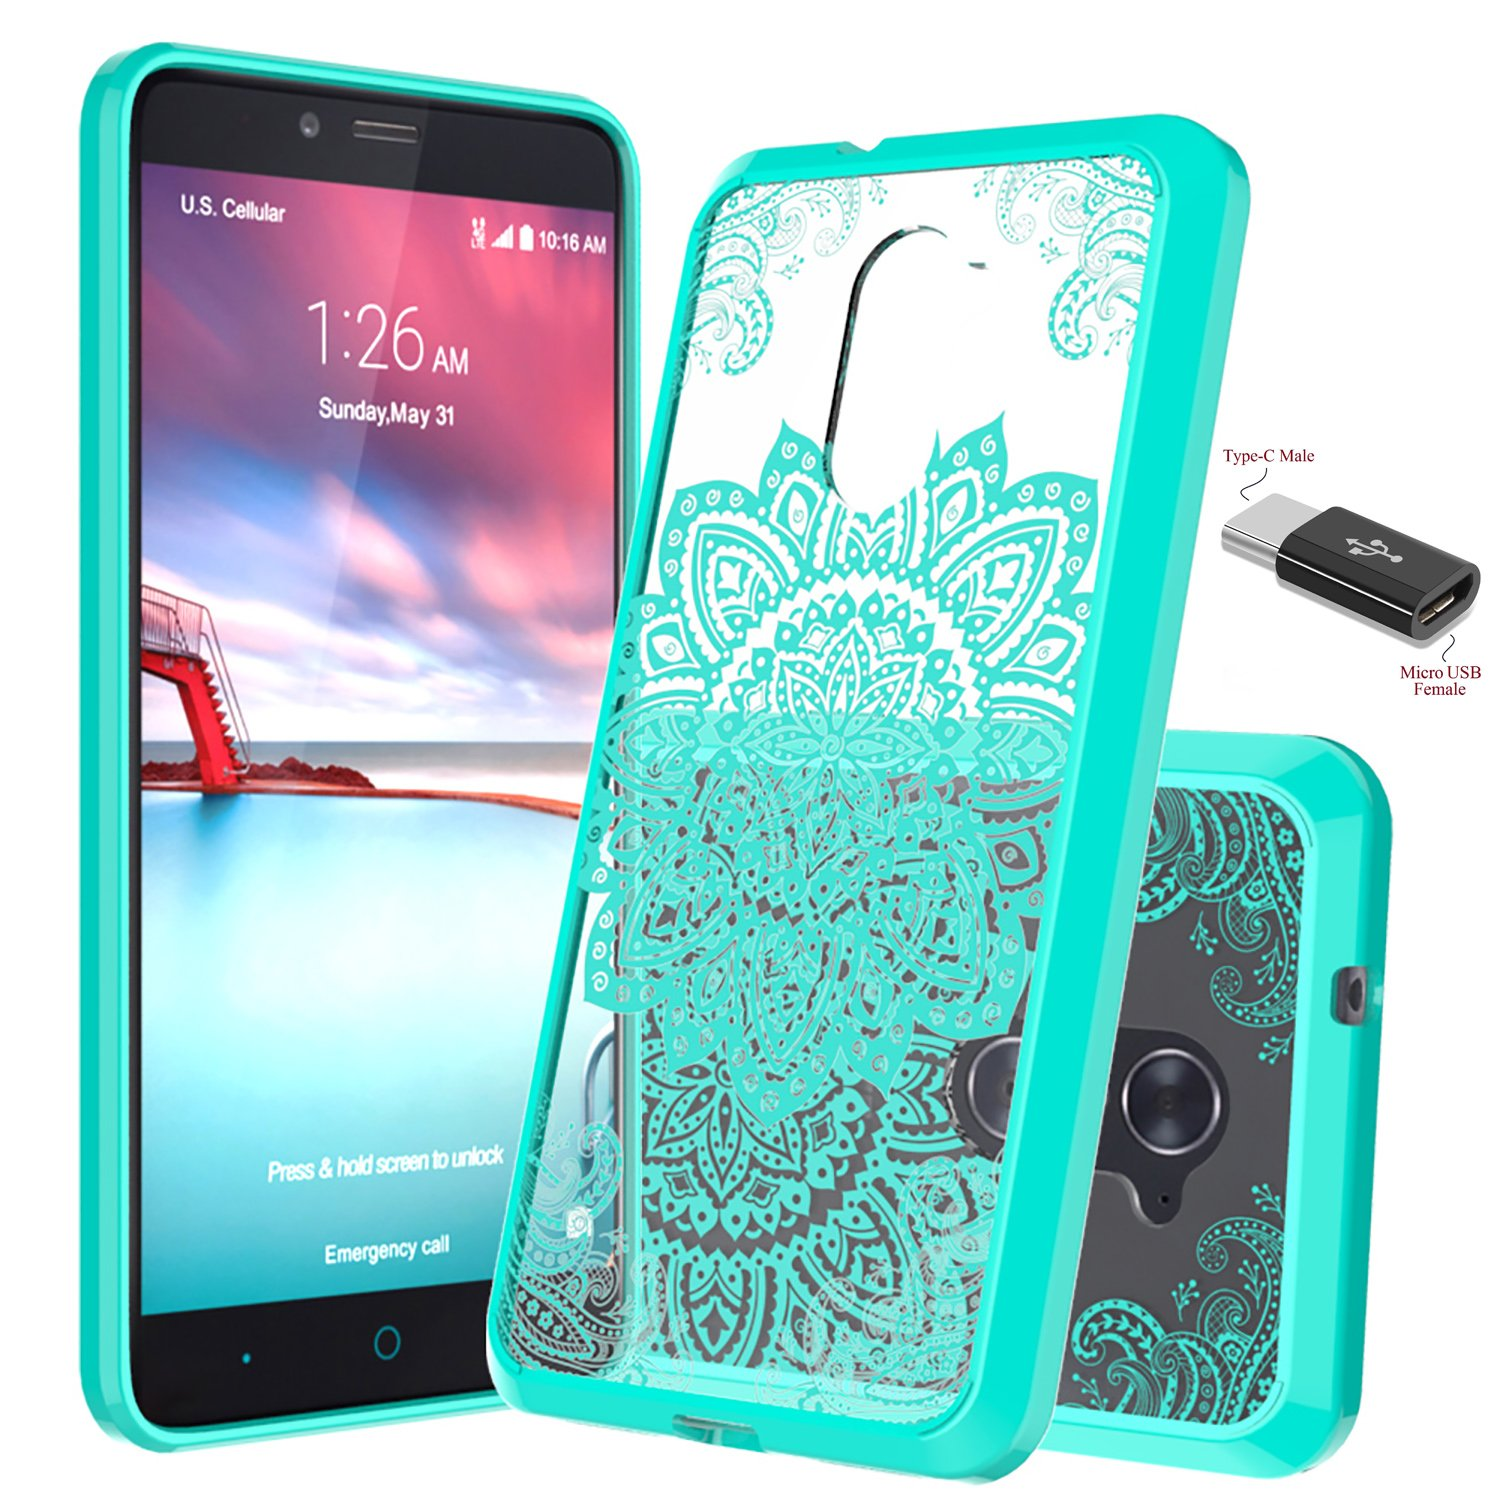 reputable site 09440 d8d5f ZTE Imperial Max case, ZTE Z963U case, ZTE Max DUO LTE Case, ZTE Grand X  Max 2/ ZTE Kirk Z988 case, Wtiaw Acrylic Hard Cover With Rubber TPU Bumper  ...